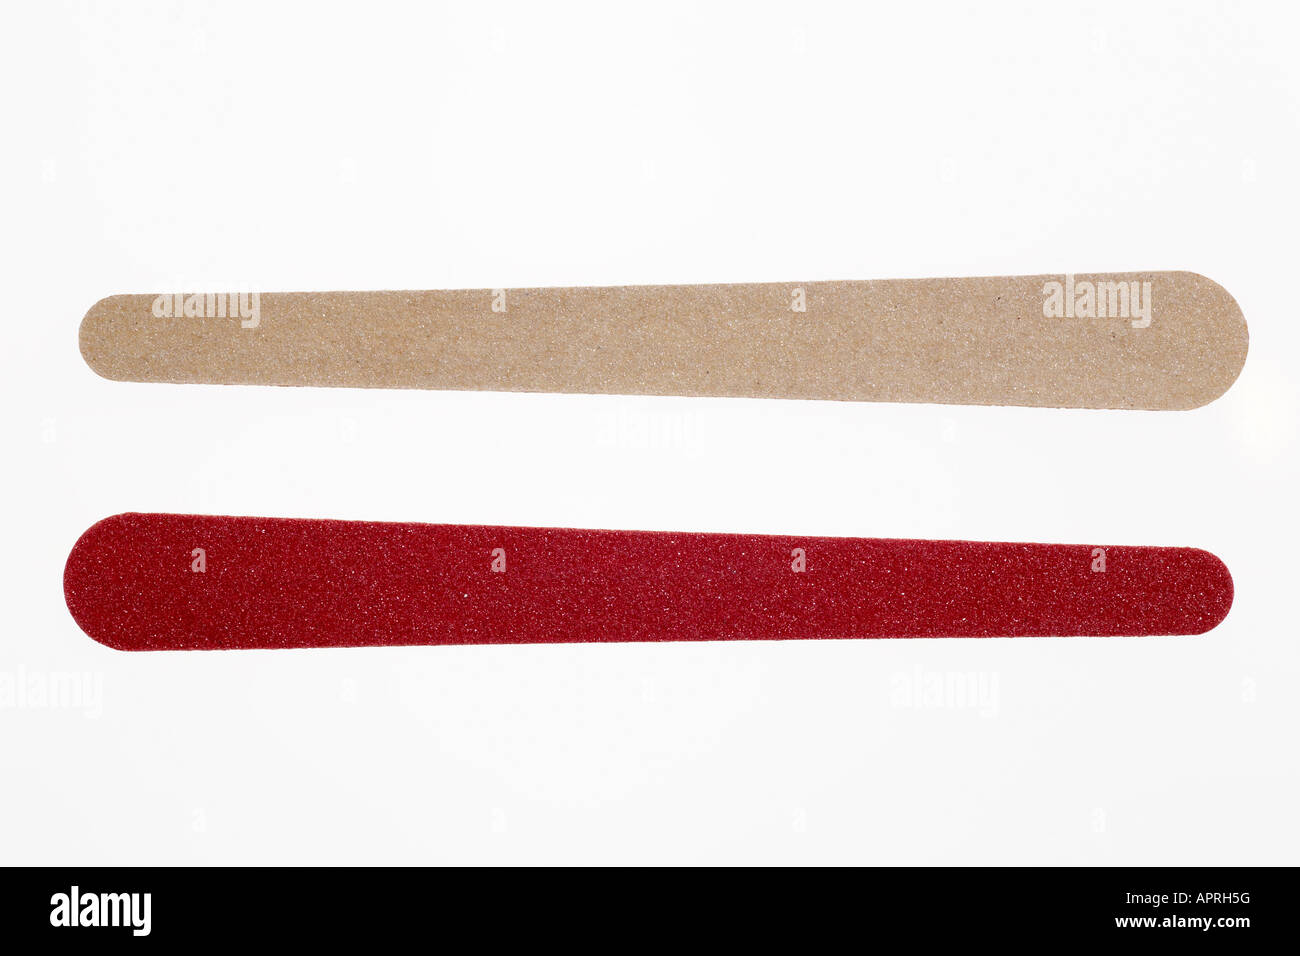 Emery boards - Stock Image